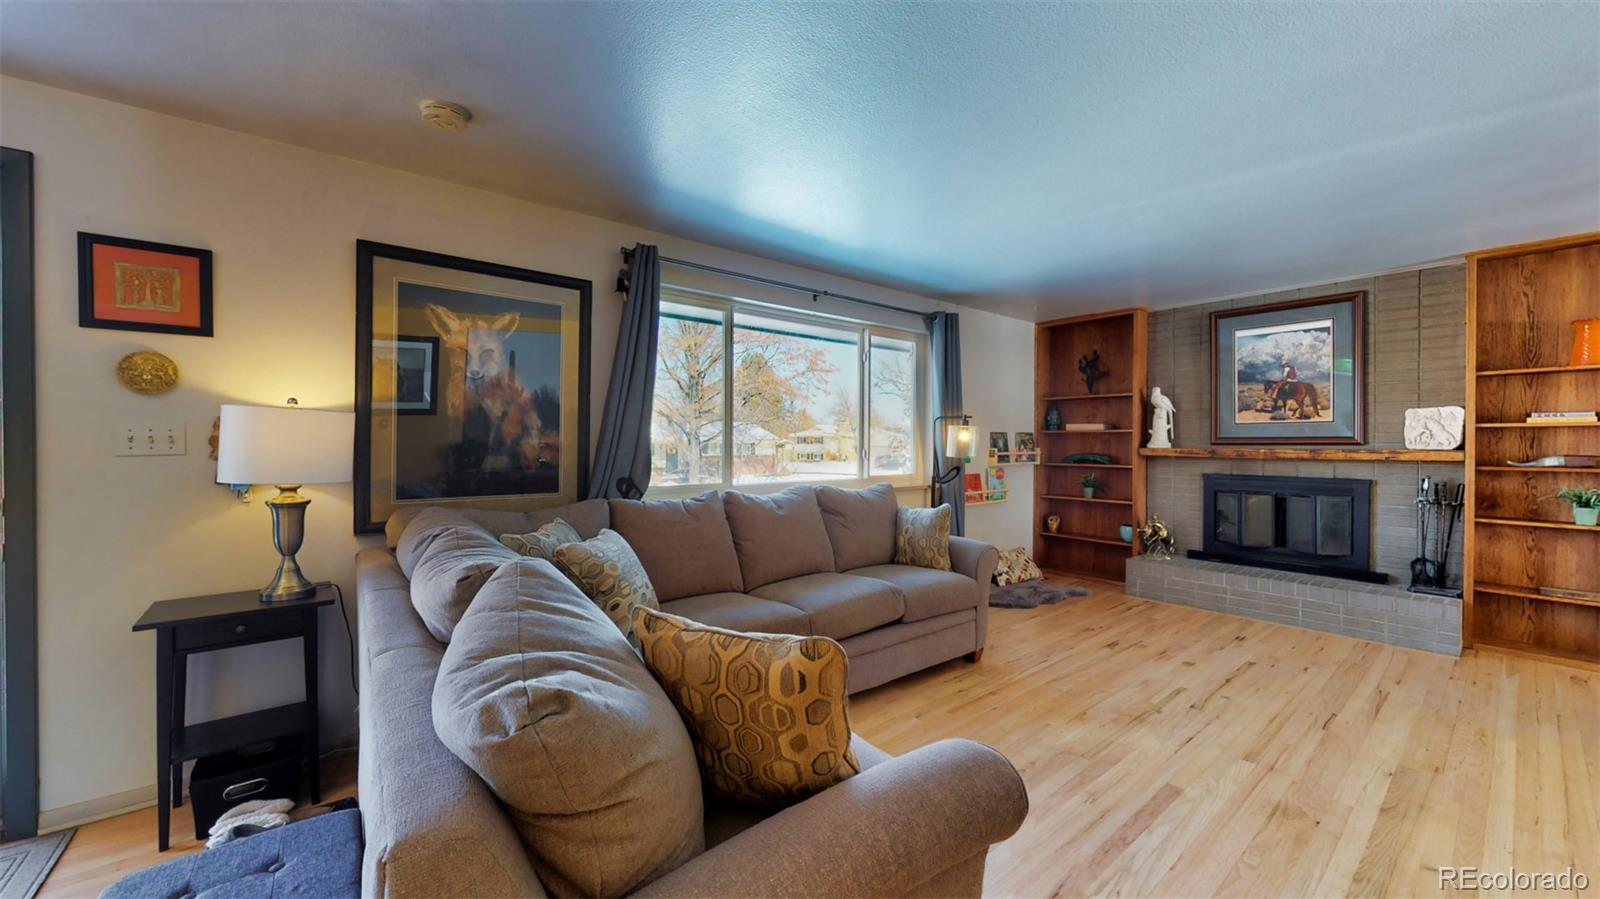 MLS# 9578351 - 2 - 3516 E Fair Place, Centennial, CO 80121